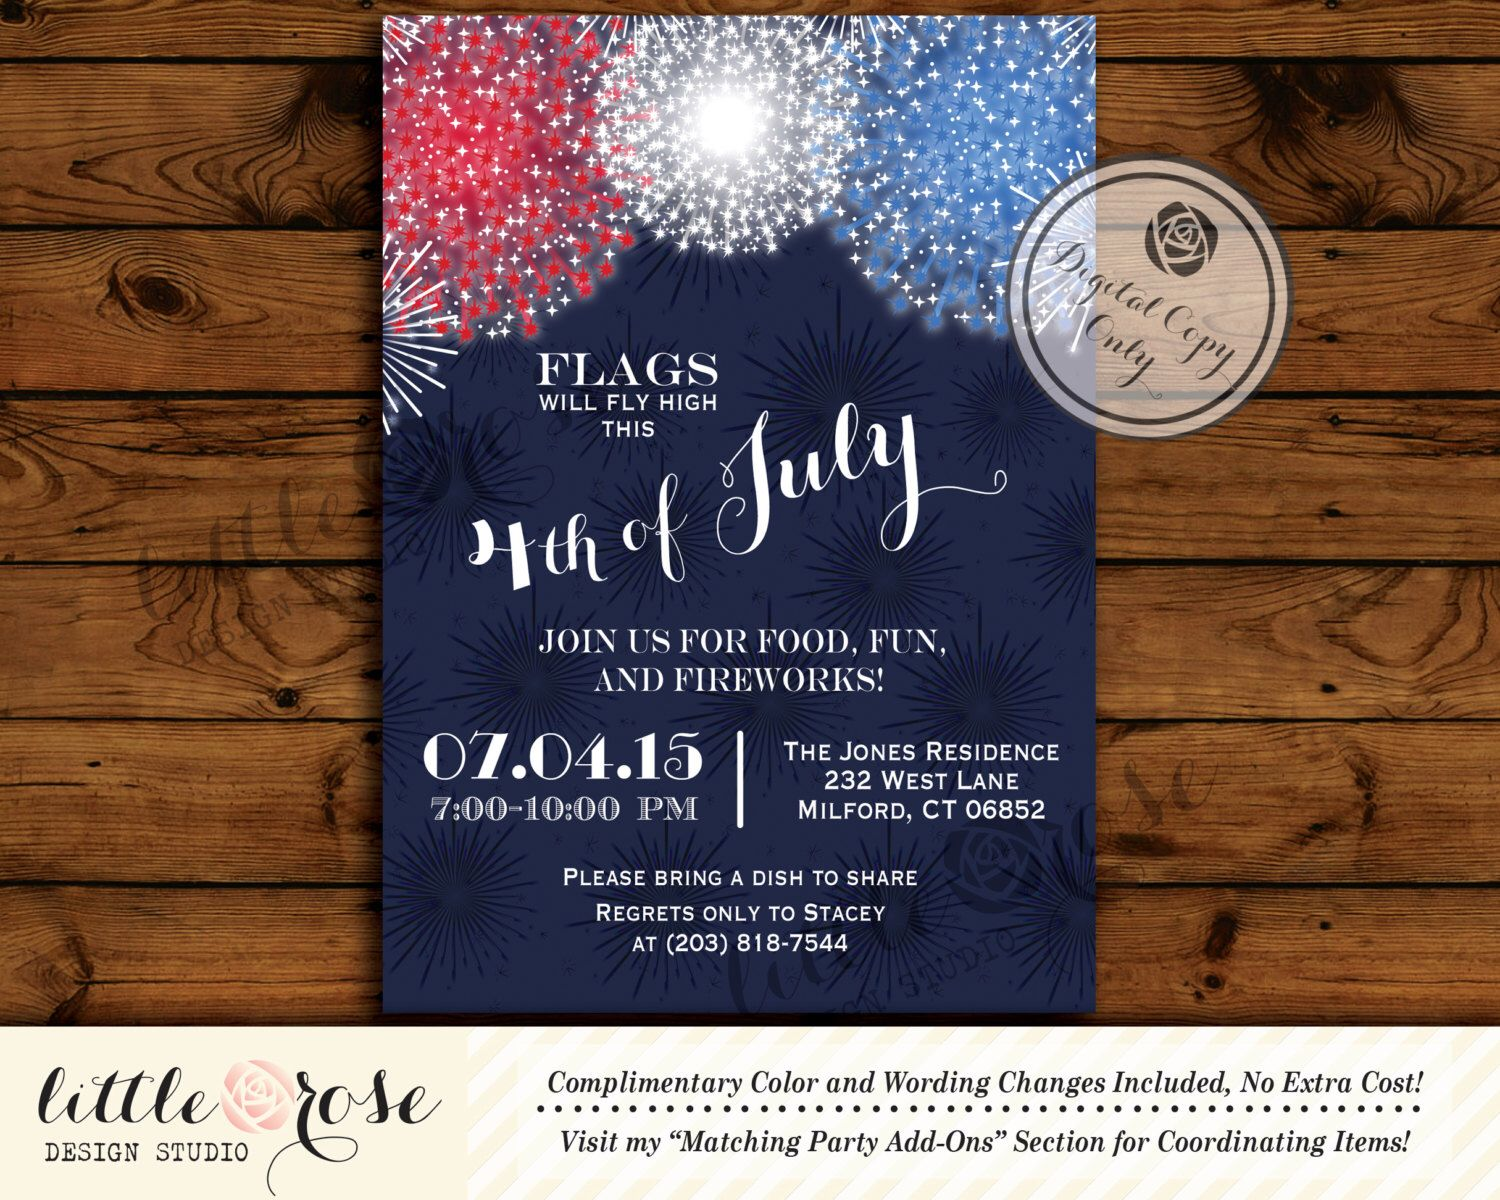 birthday party invitations printable%0A Fourth of July Party  Memorial Day Invite  Labor Day Invitation  of July  BBQ  Birthday  Patriotic  Fireworks  Printable